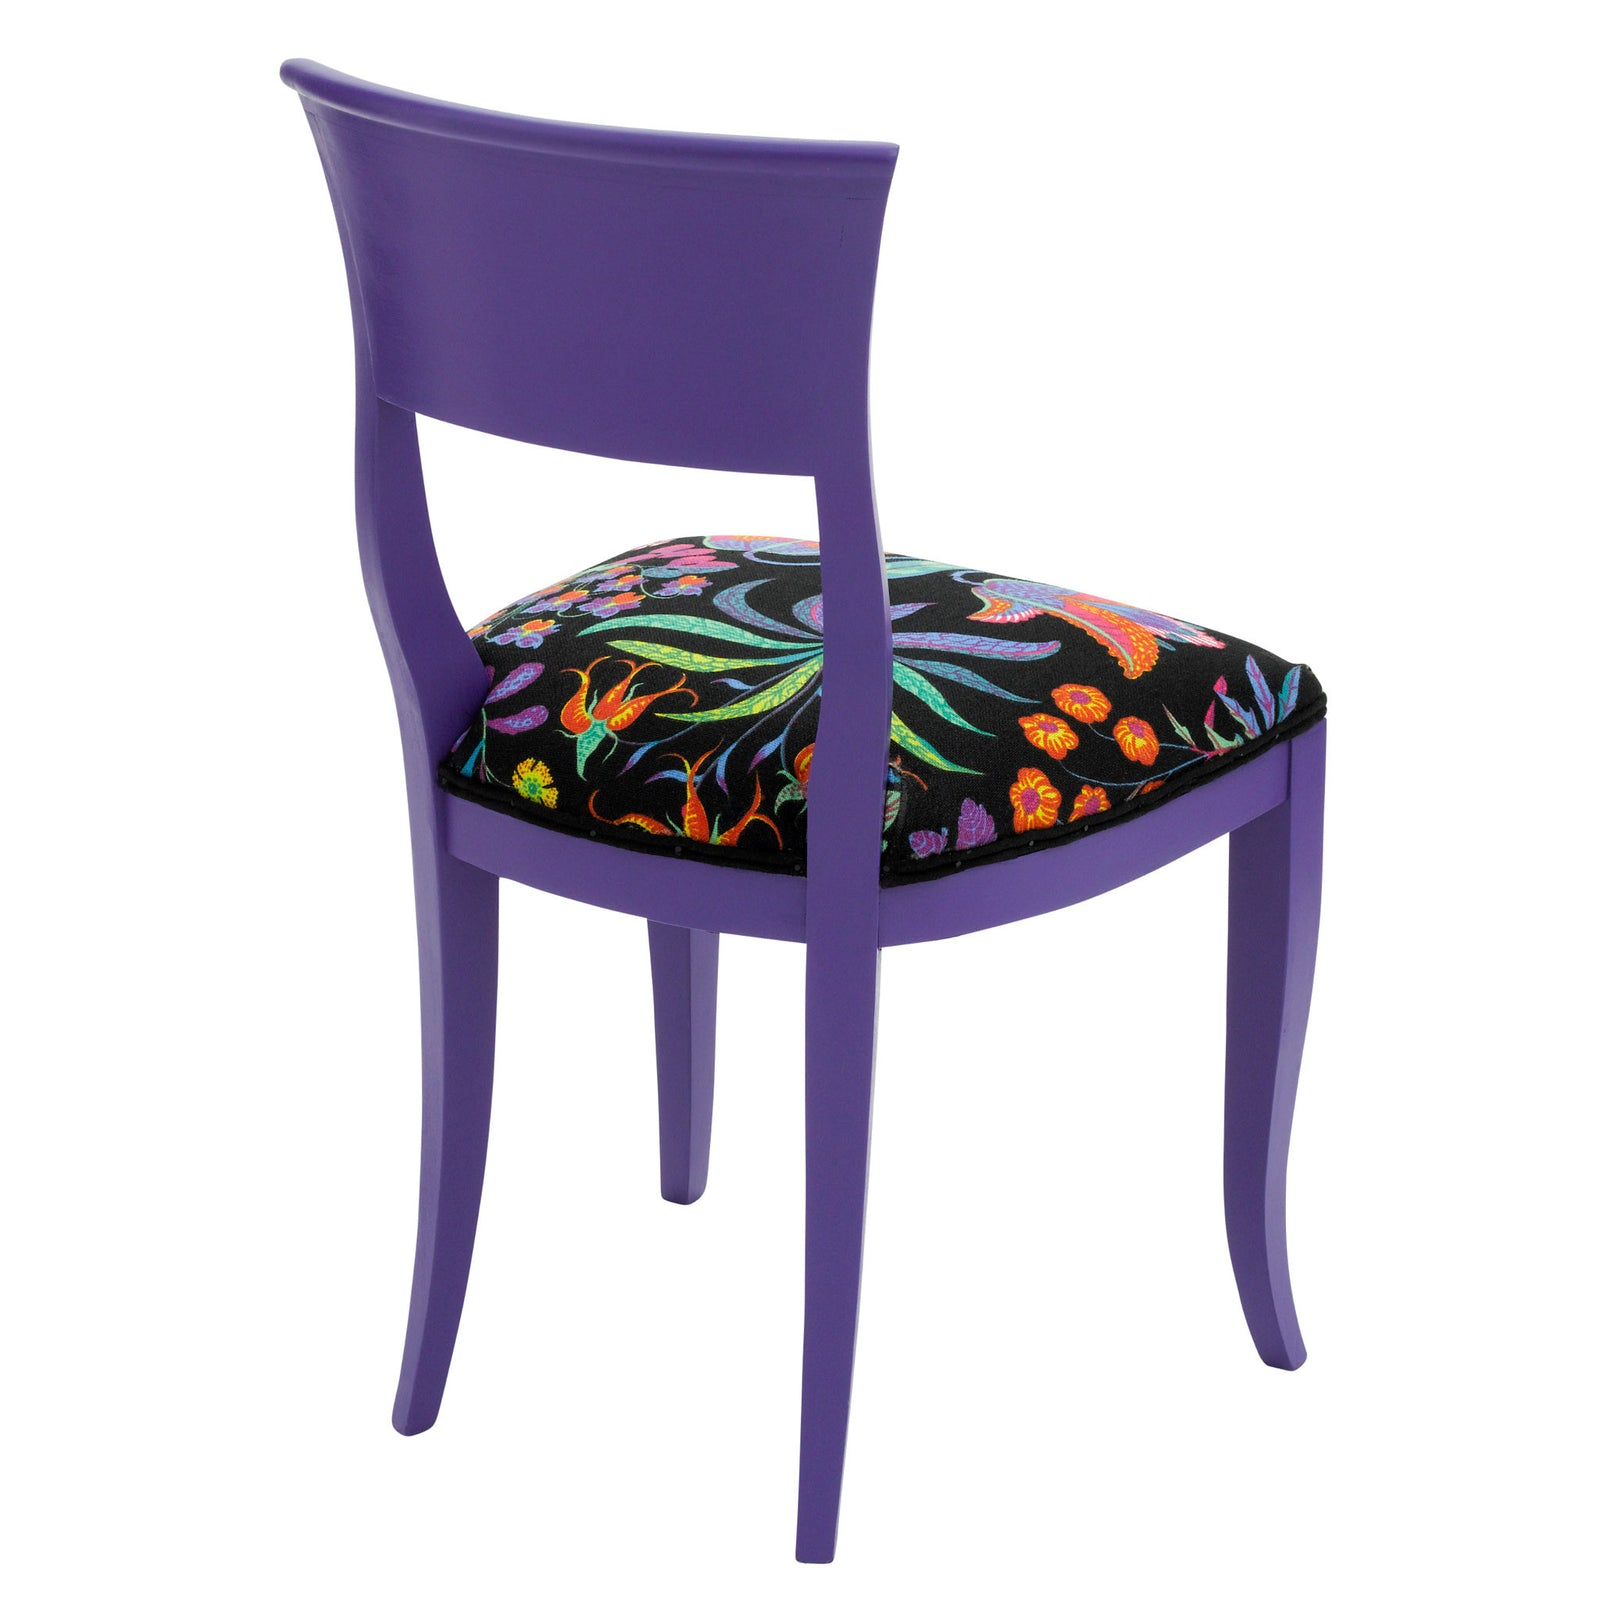 Rear view of the Kate designer dining chair upholstered in Josef Frank's Under Ekvatorn print and finished in purple heart egg shell.